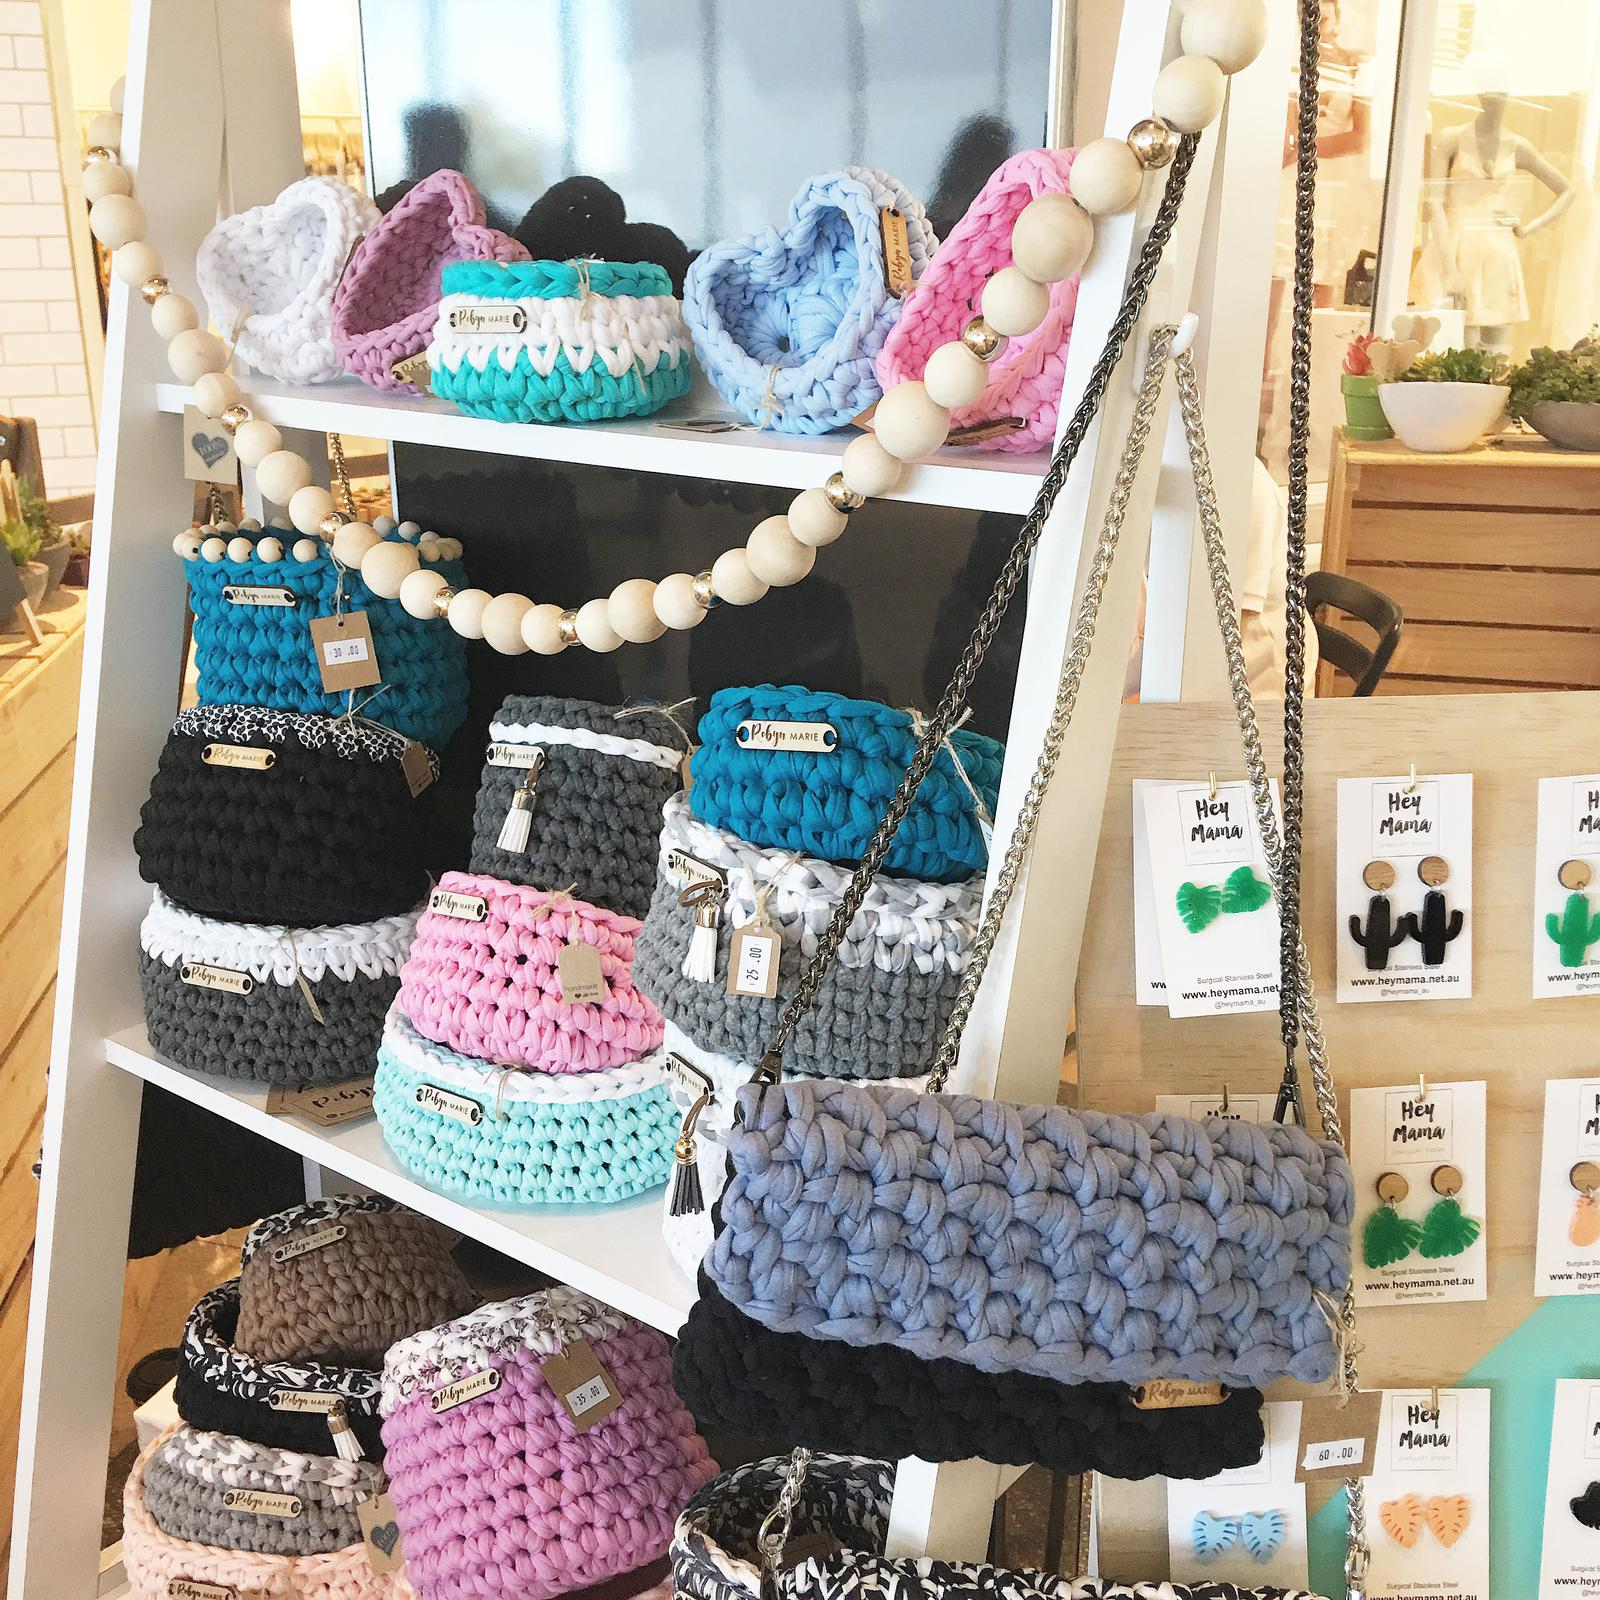 Crochet baskets and clutch